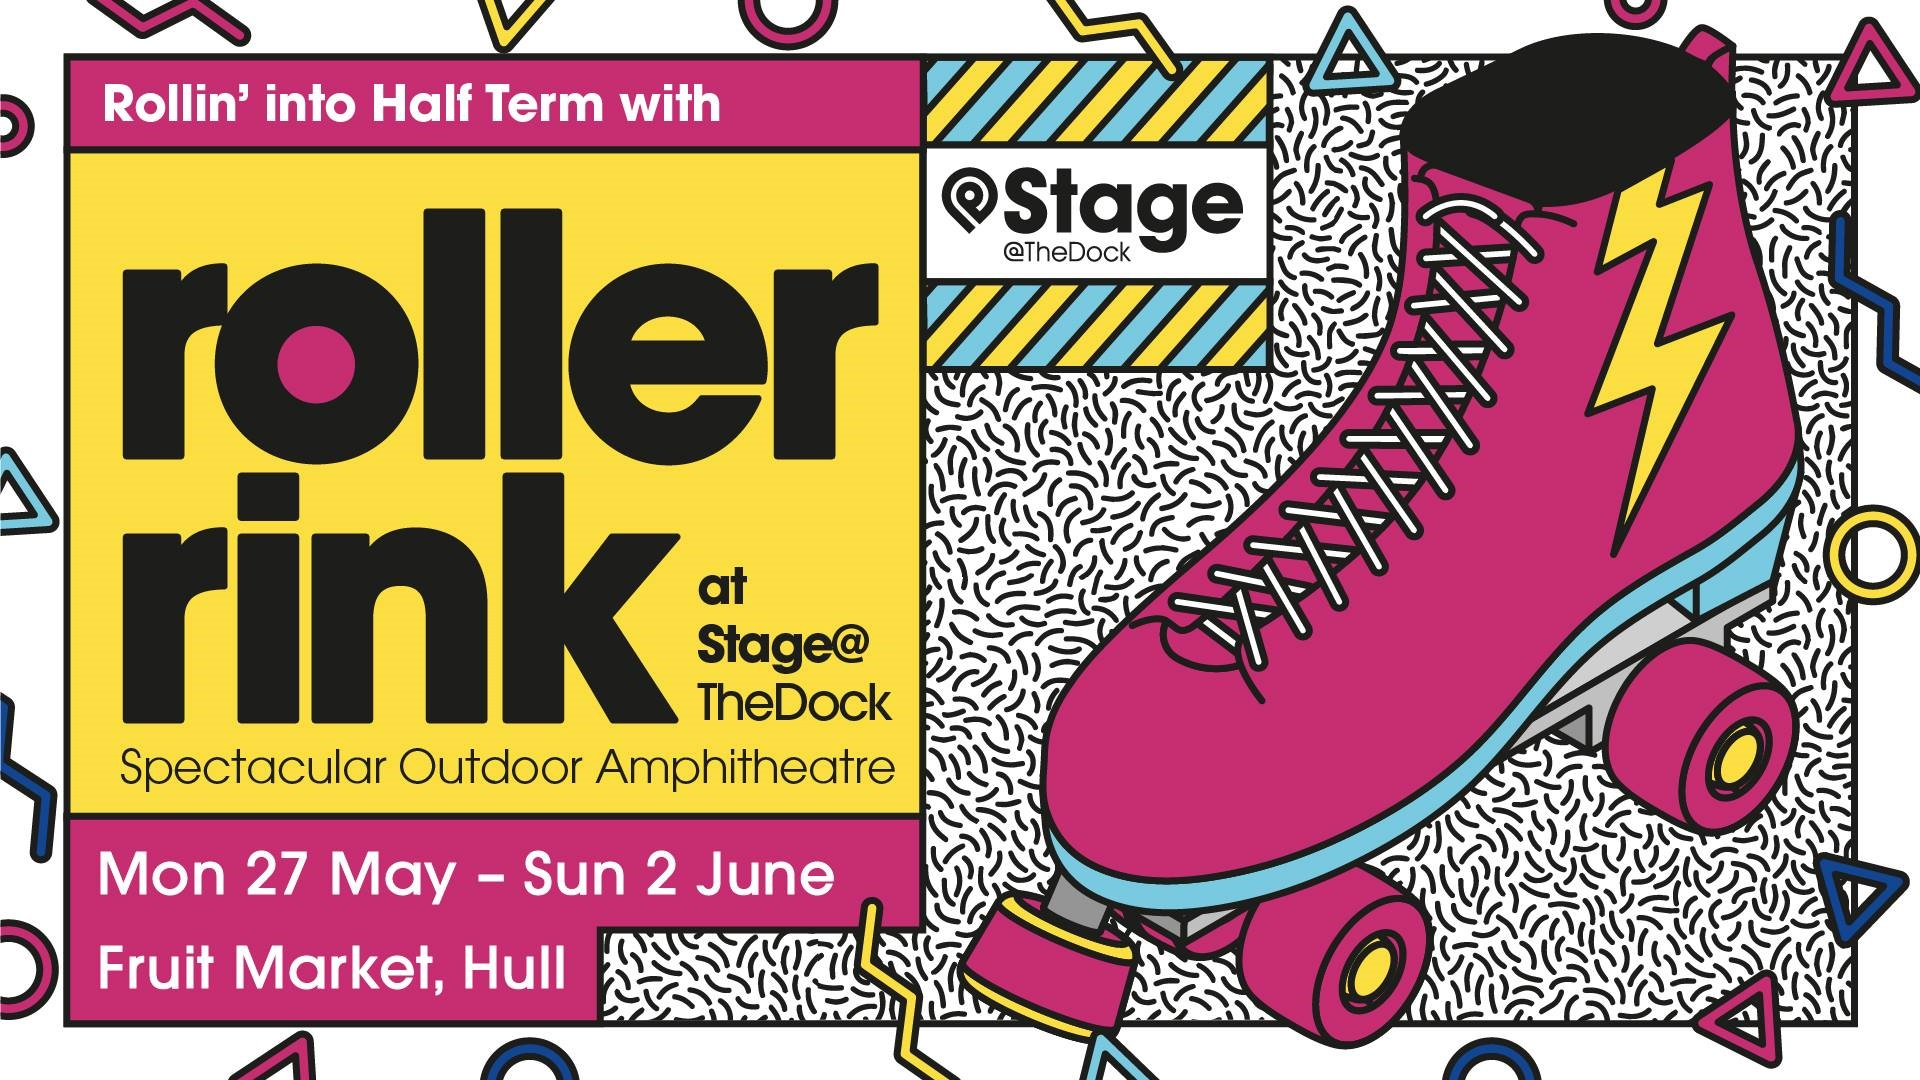 The Stage@TheDock amphitheatre at the Fruit Market will become a roller rink.